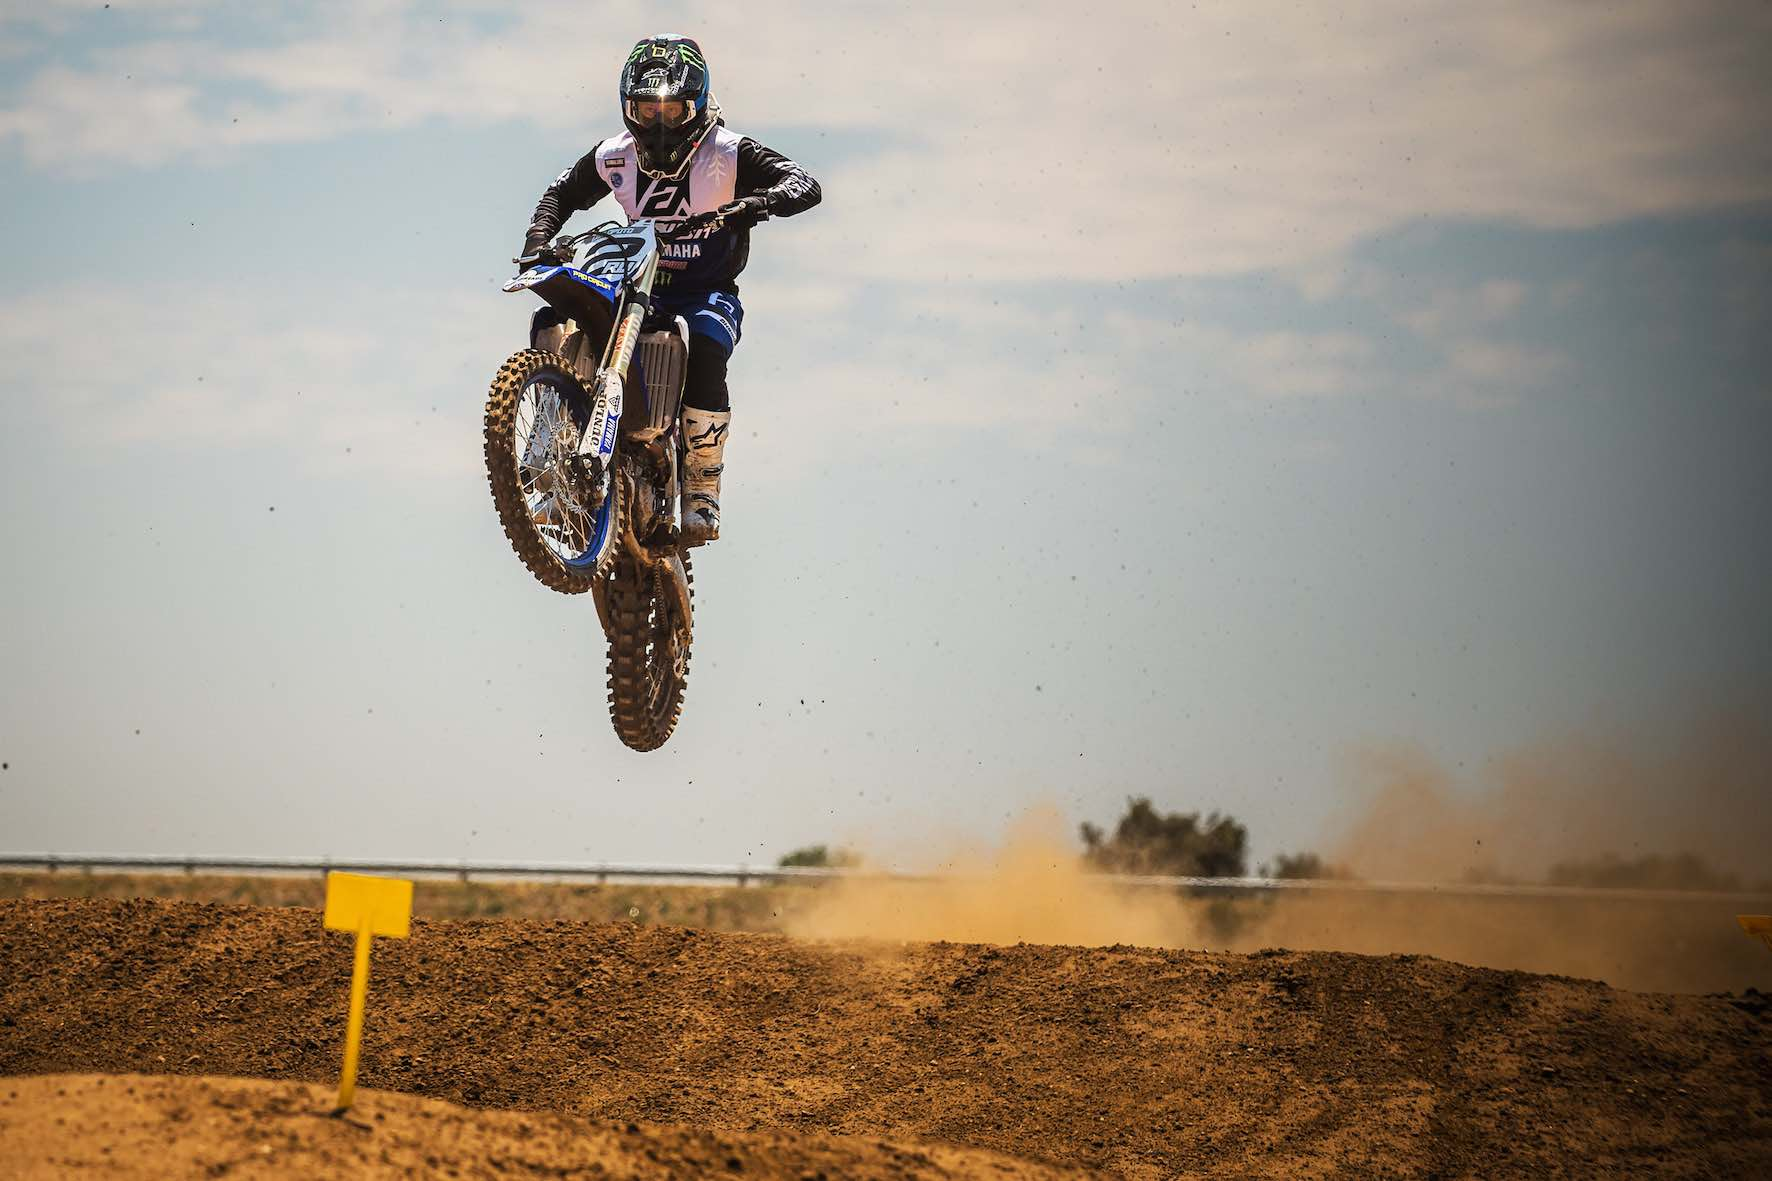 Supercross rider, Ryan Villopoto in South Africa